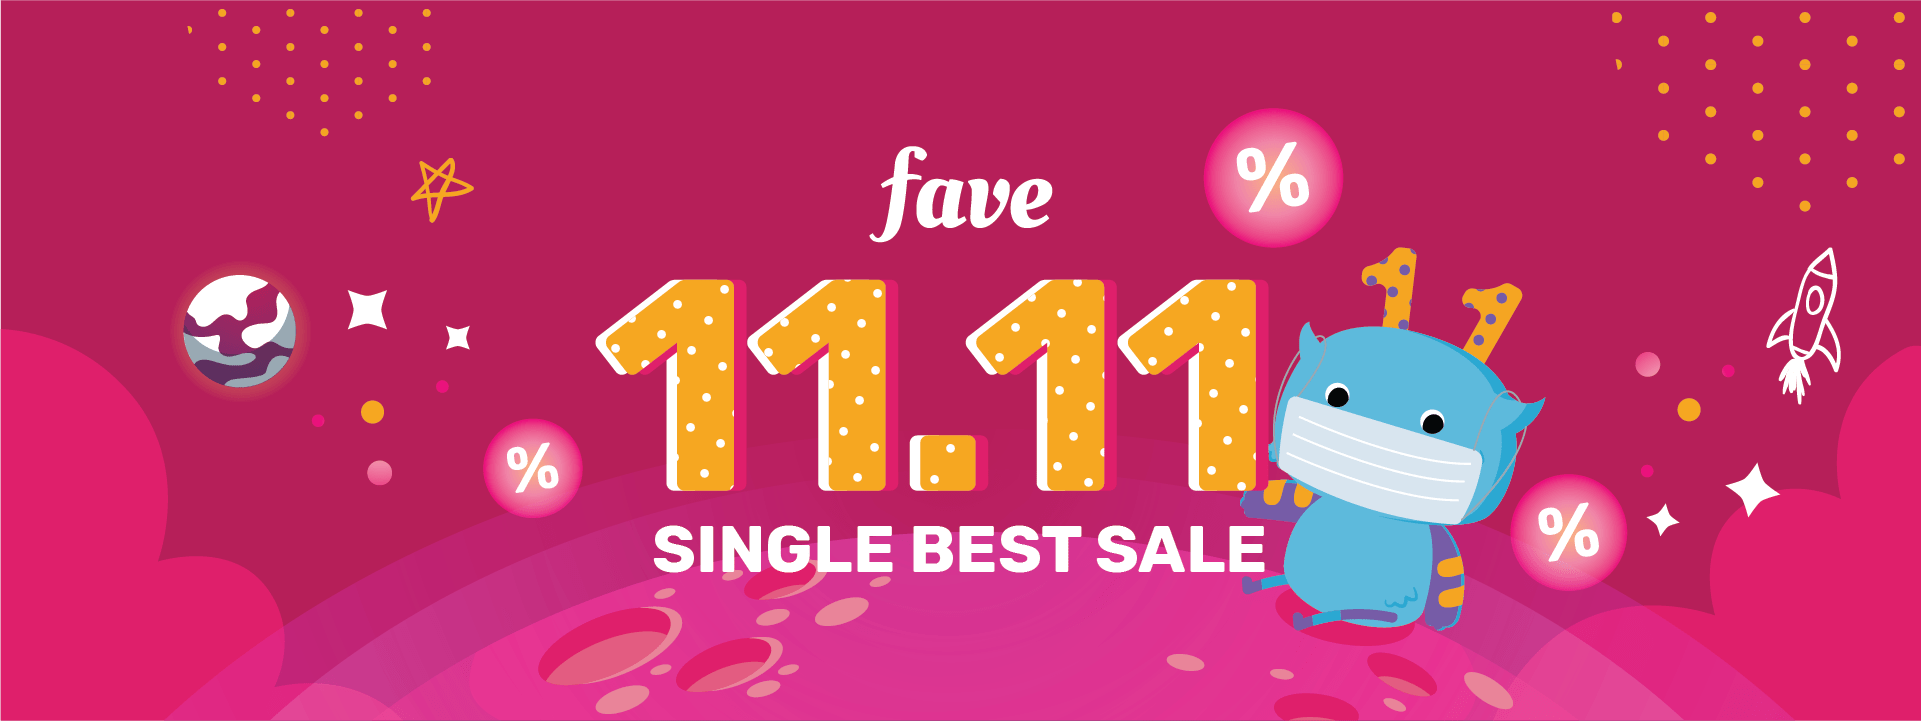 Save, Splurge & Repeat this 11.11 with Fave – CMCO Deals At 90% Off And More From Staycation, F&B To Wellness